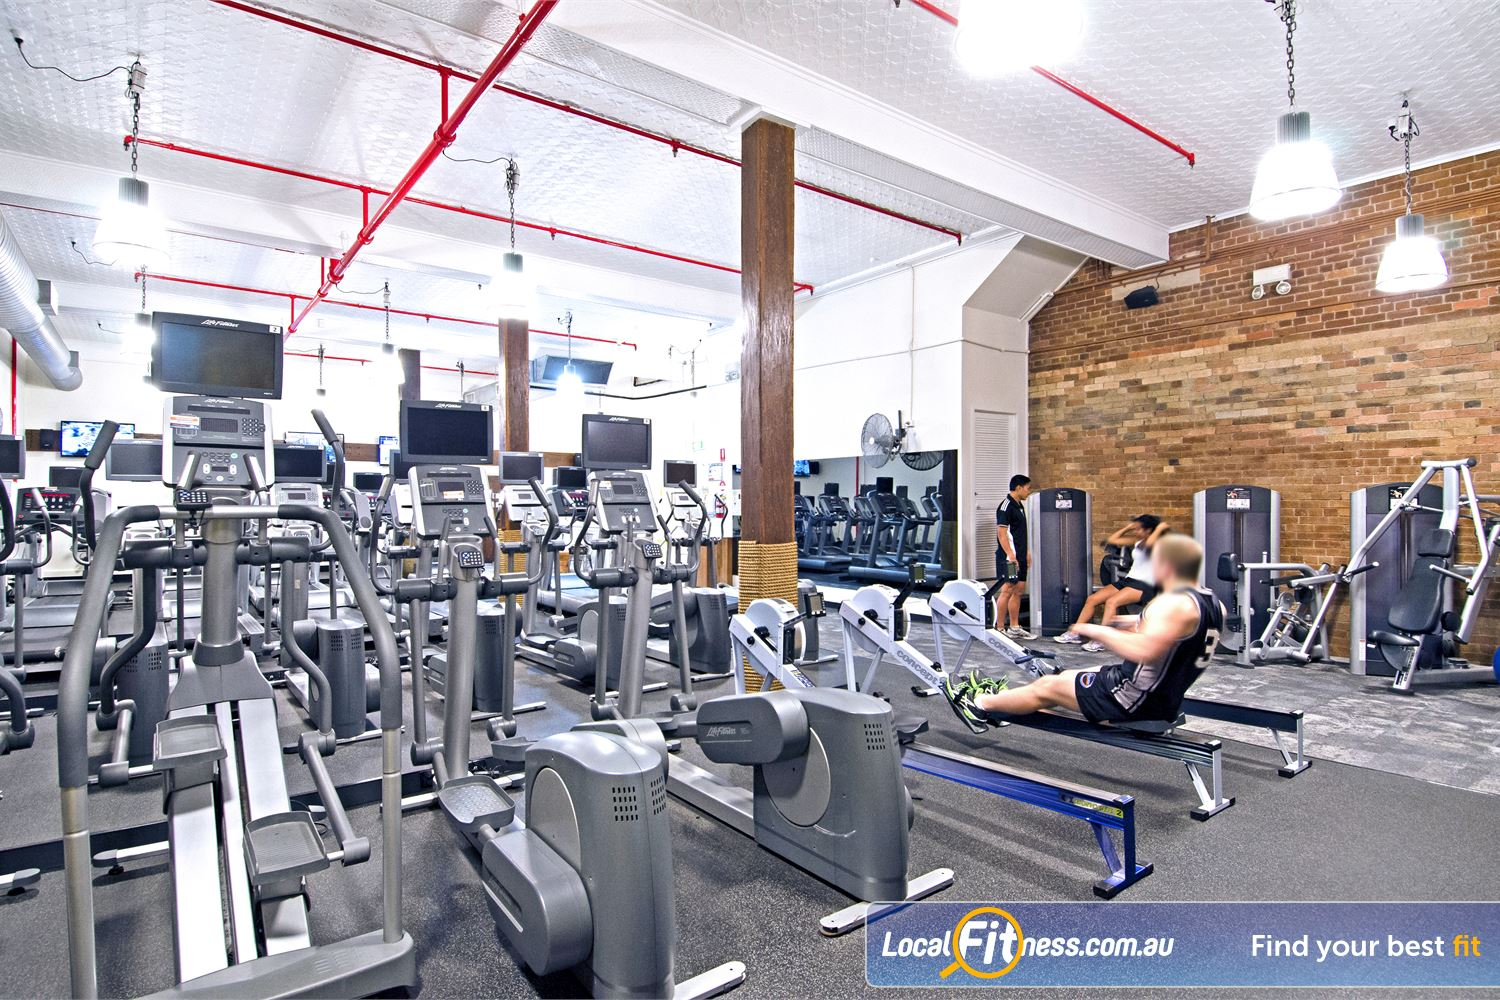 Goodlife Health Clubs Edward St Brisbane Goodlife Edward St Brisbane gym provides multiple machines so you don't have to wait.